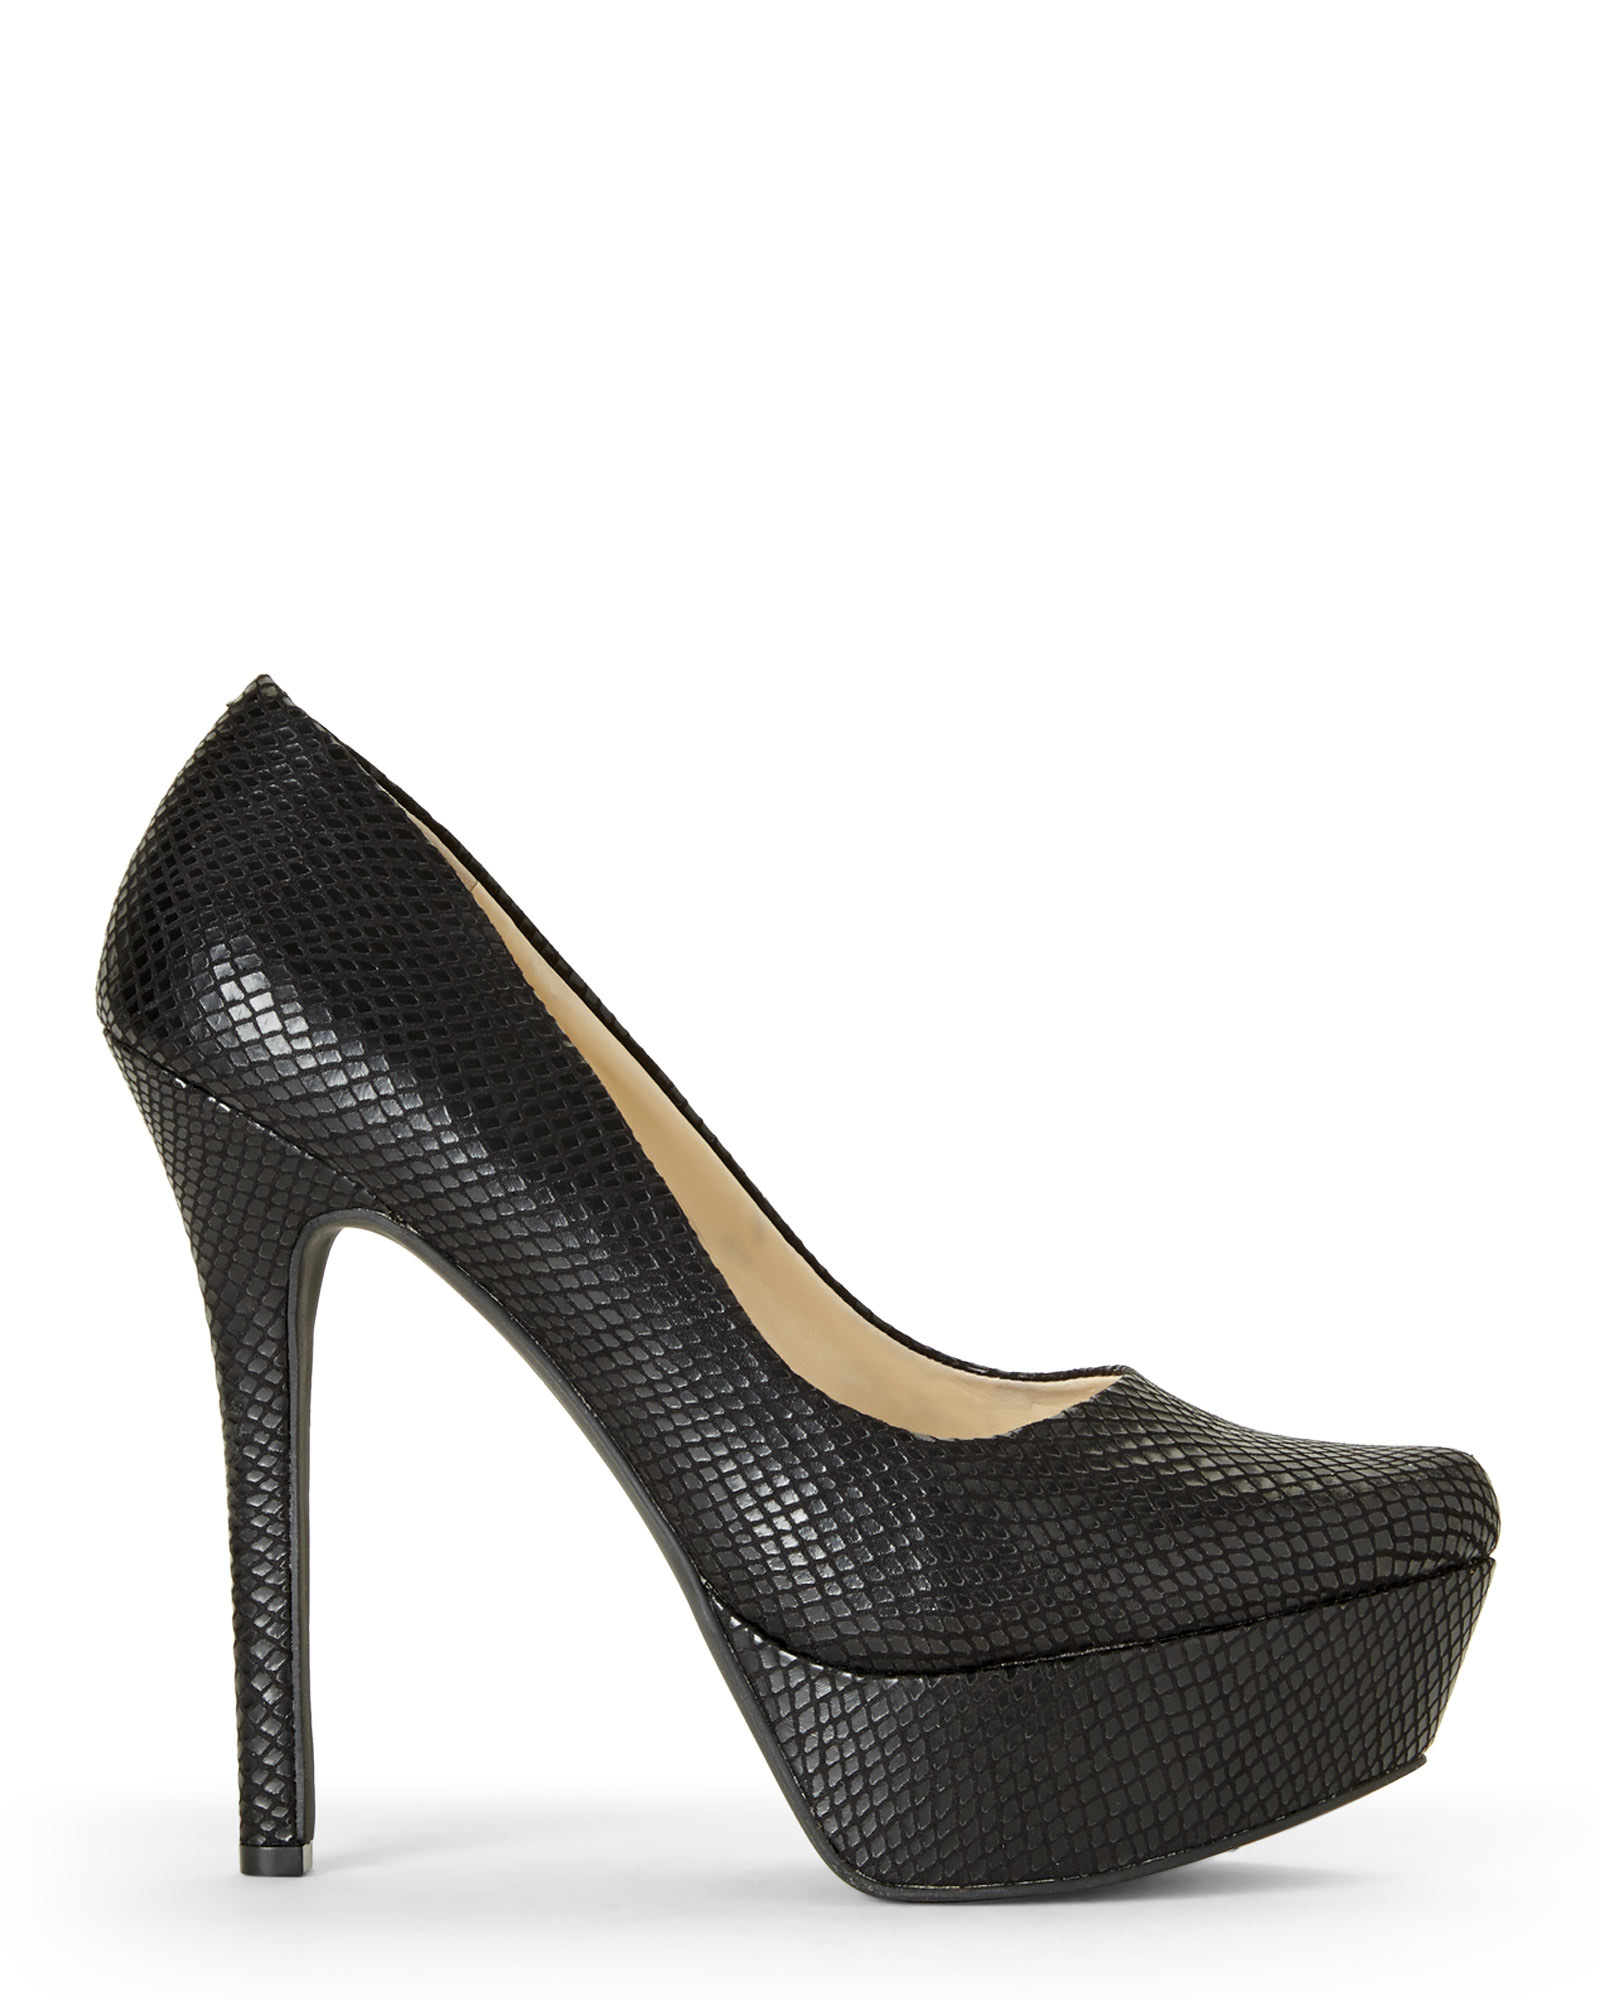 590e22d85681 Jessica Simpson Black Waleo Platform Pumps in Black - Lyst